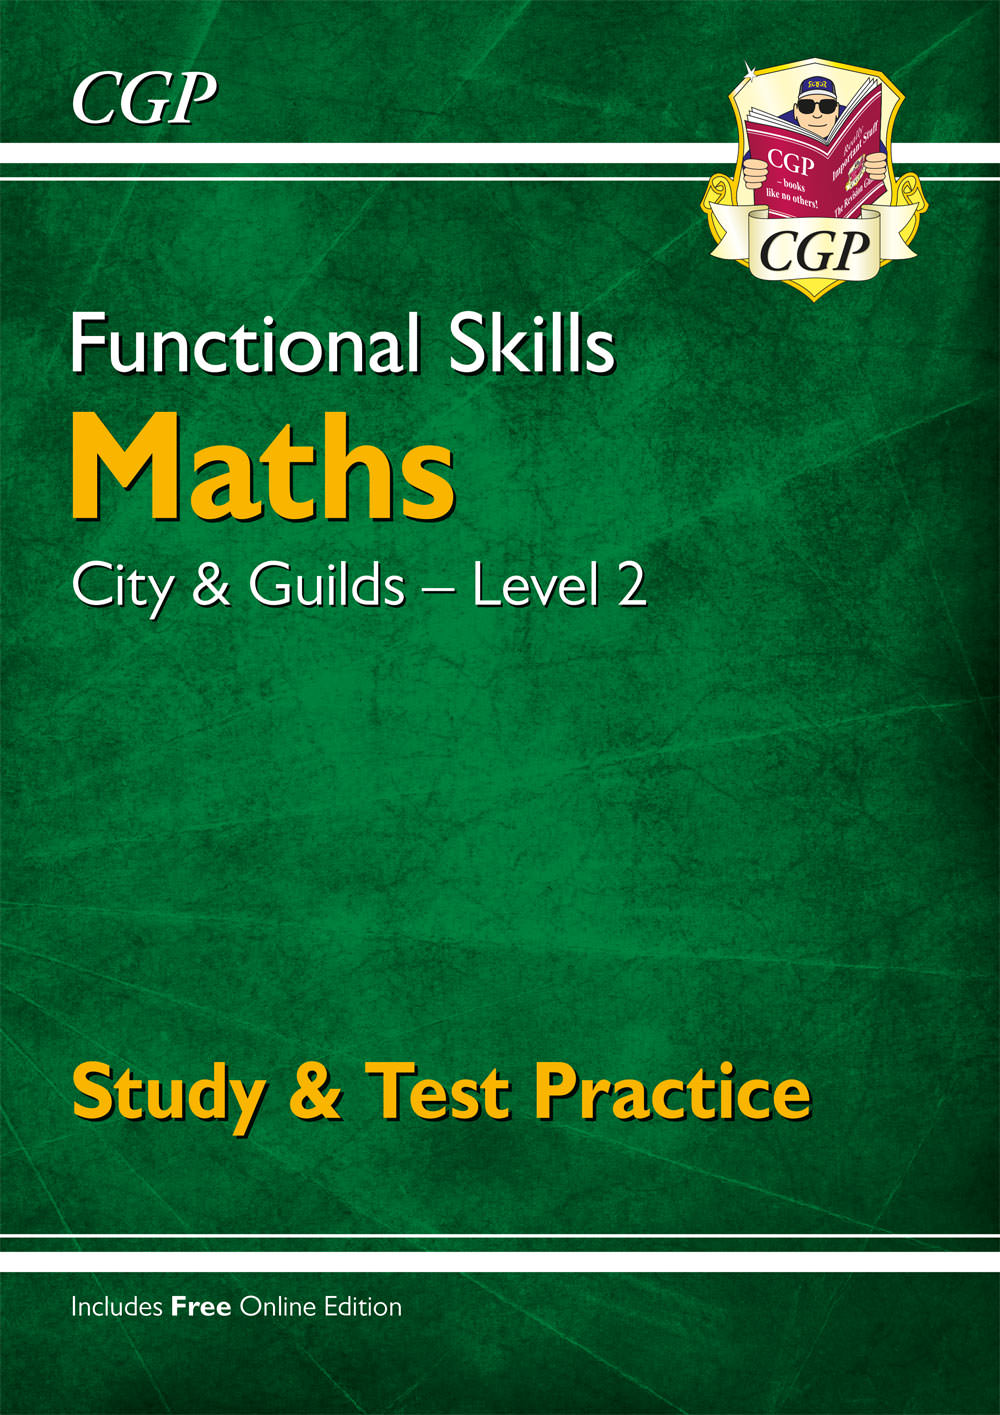 M2CGSRA1 - New Functional Skills Maths: City & Guilds Level 2 - Study & Test Practice (for 2020 & be